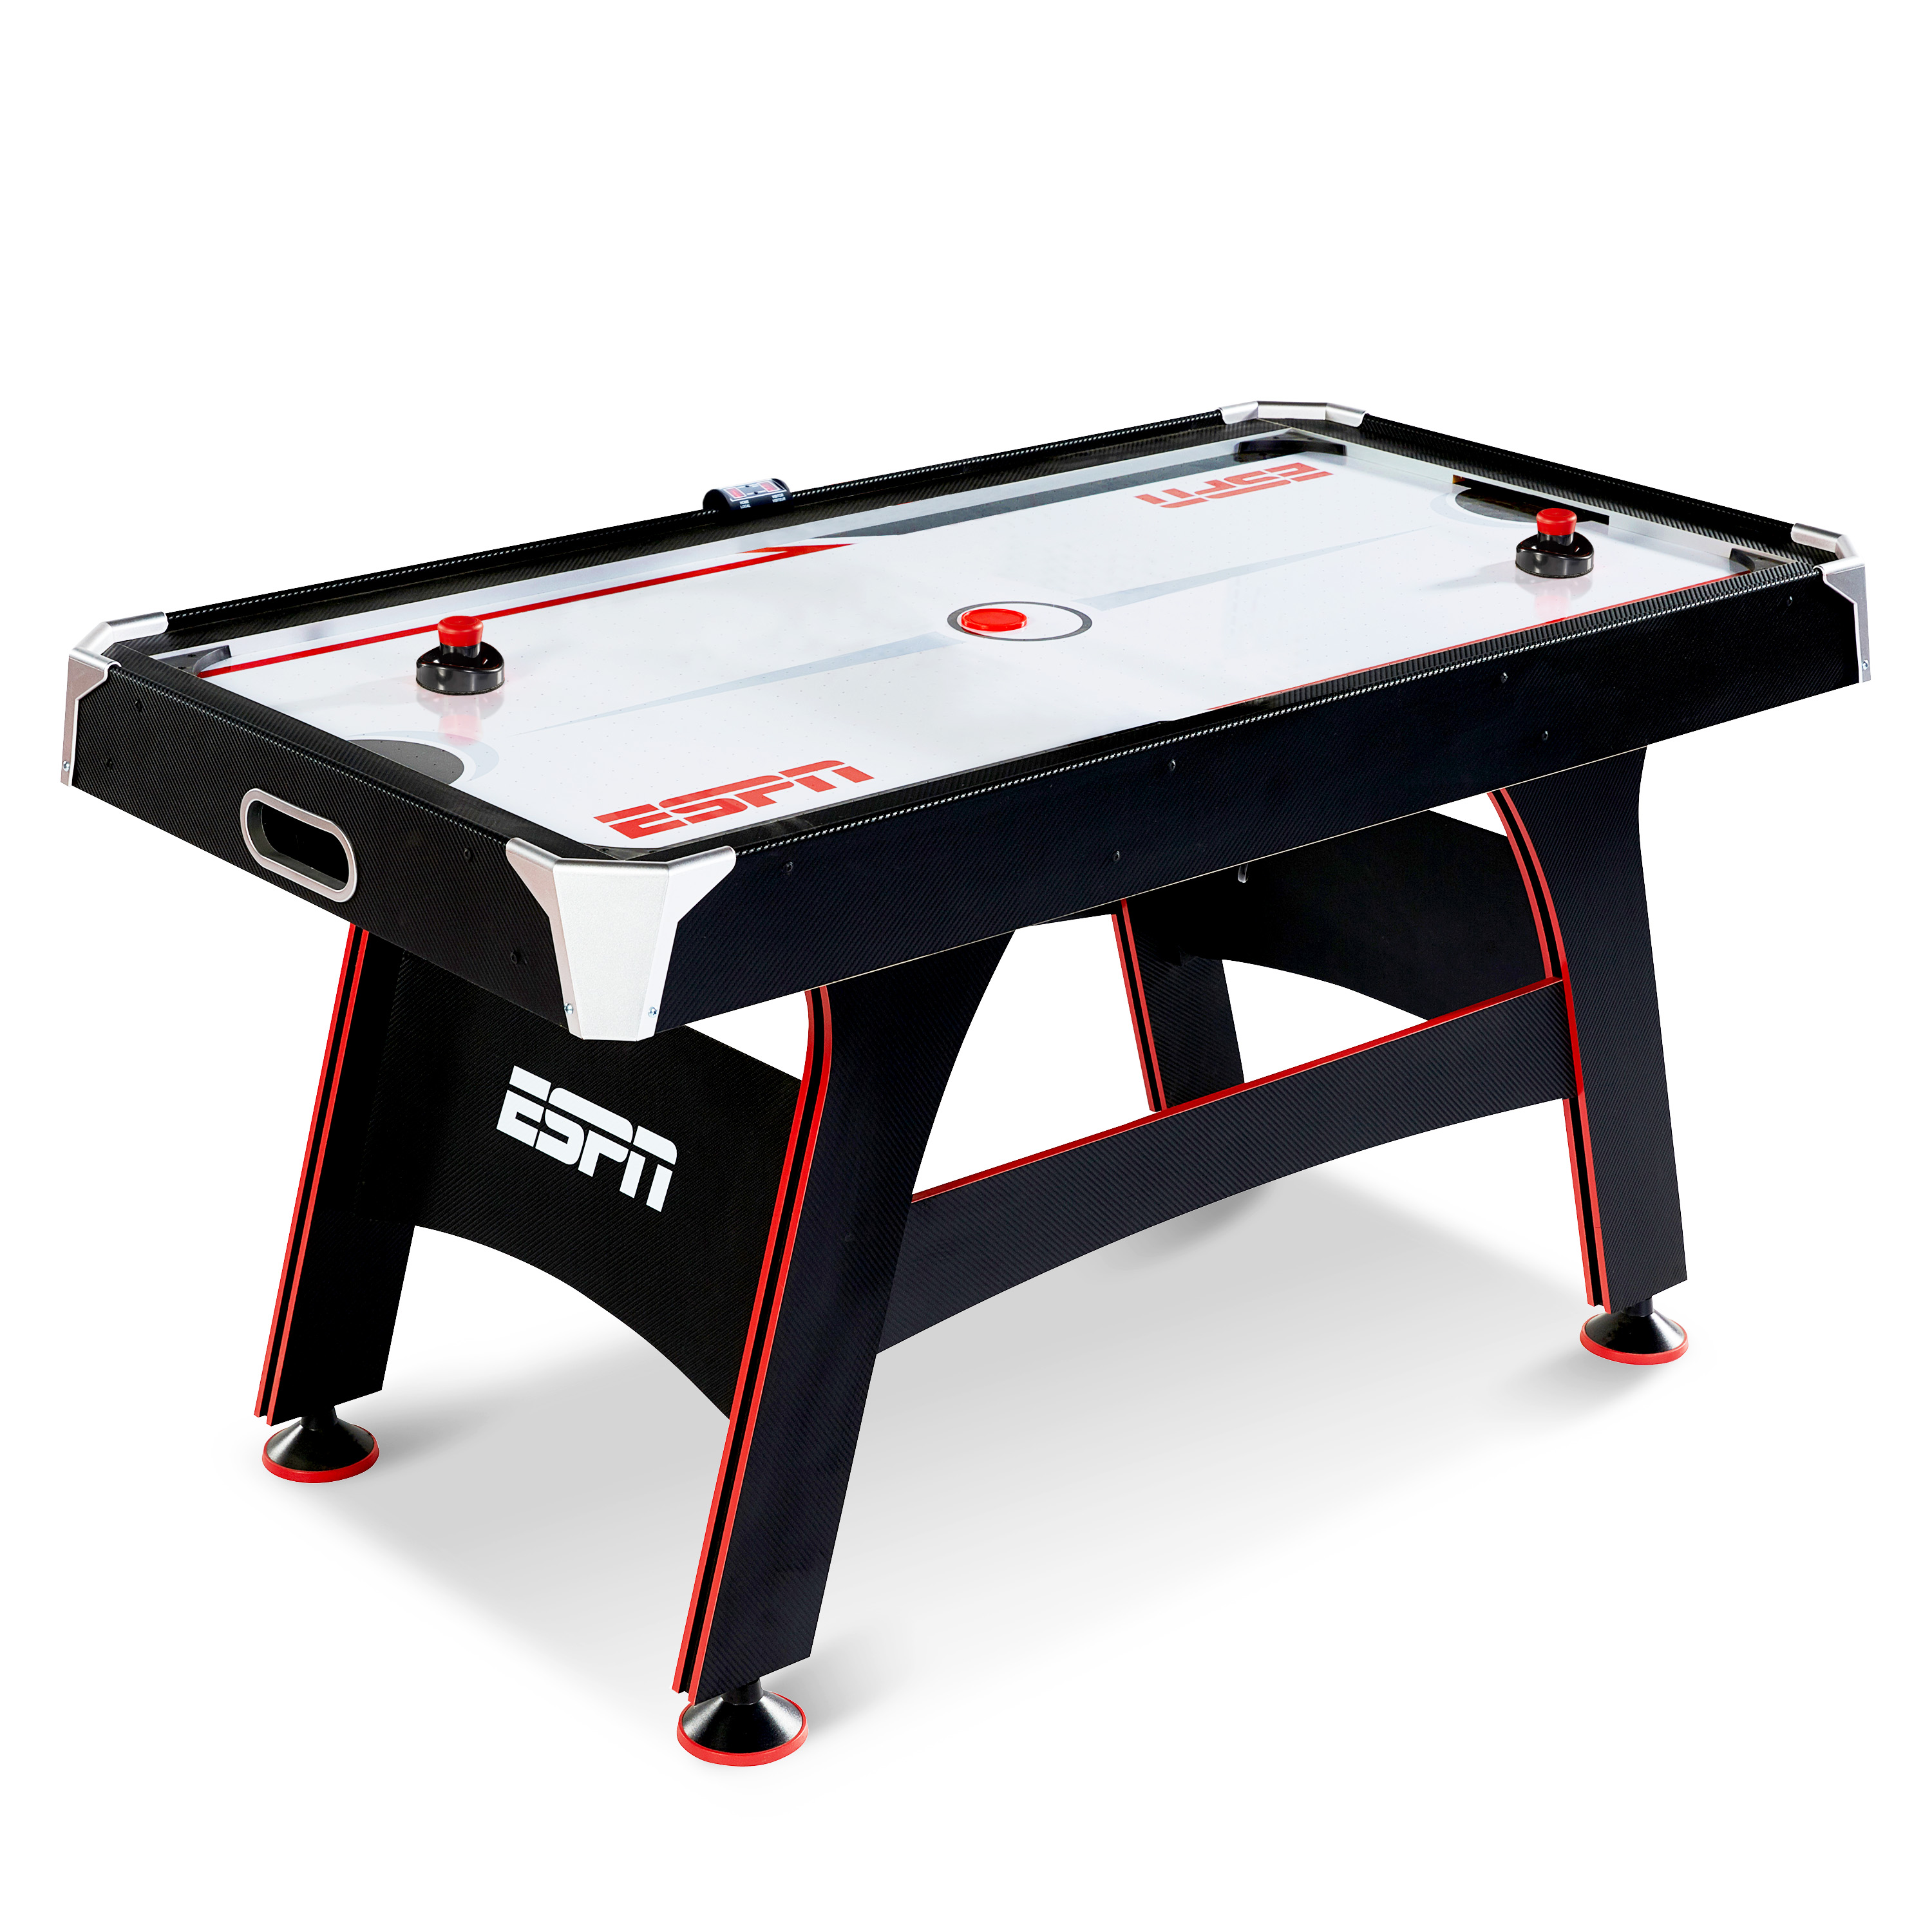 ESPN 5 FT. AIR POWERED HOCKEY TABLE WITH LED ELECTRONIC SCORER